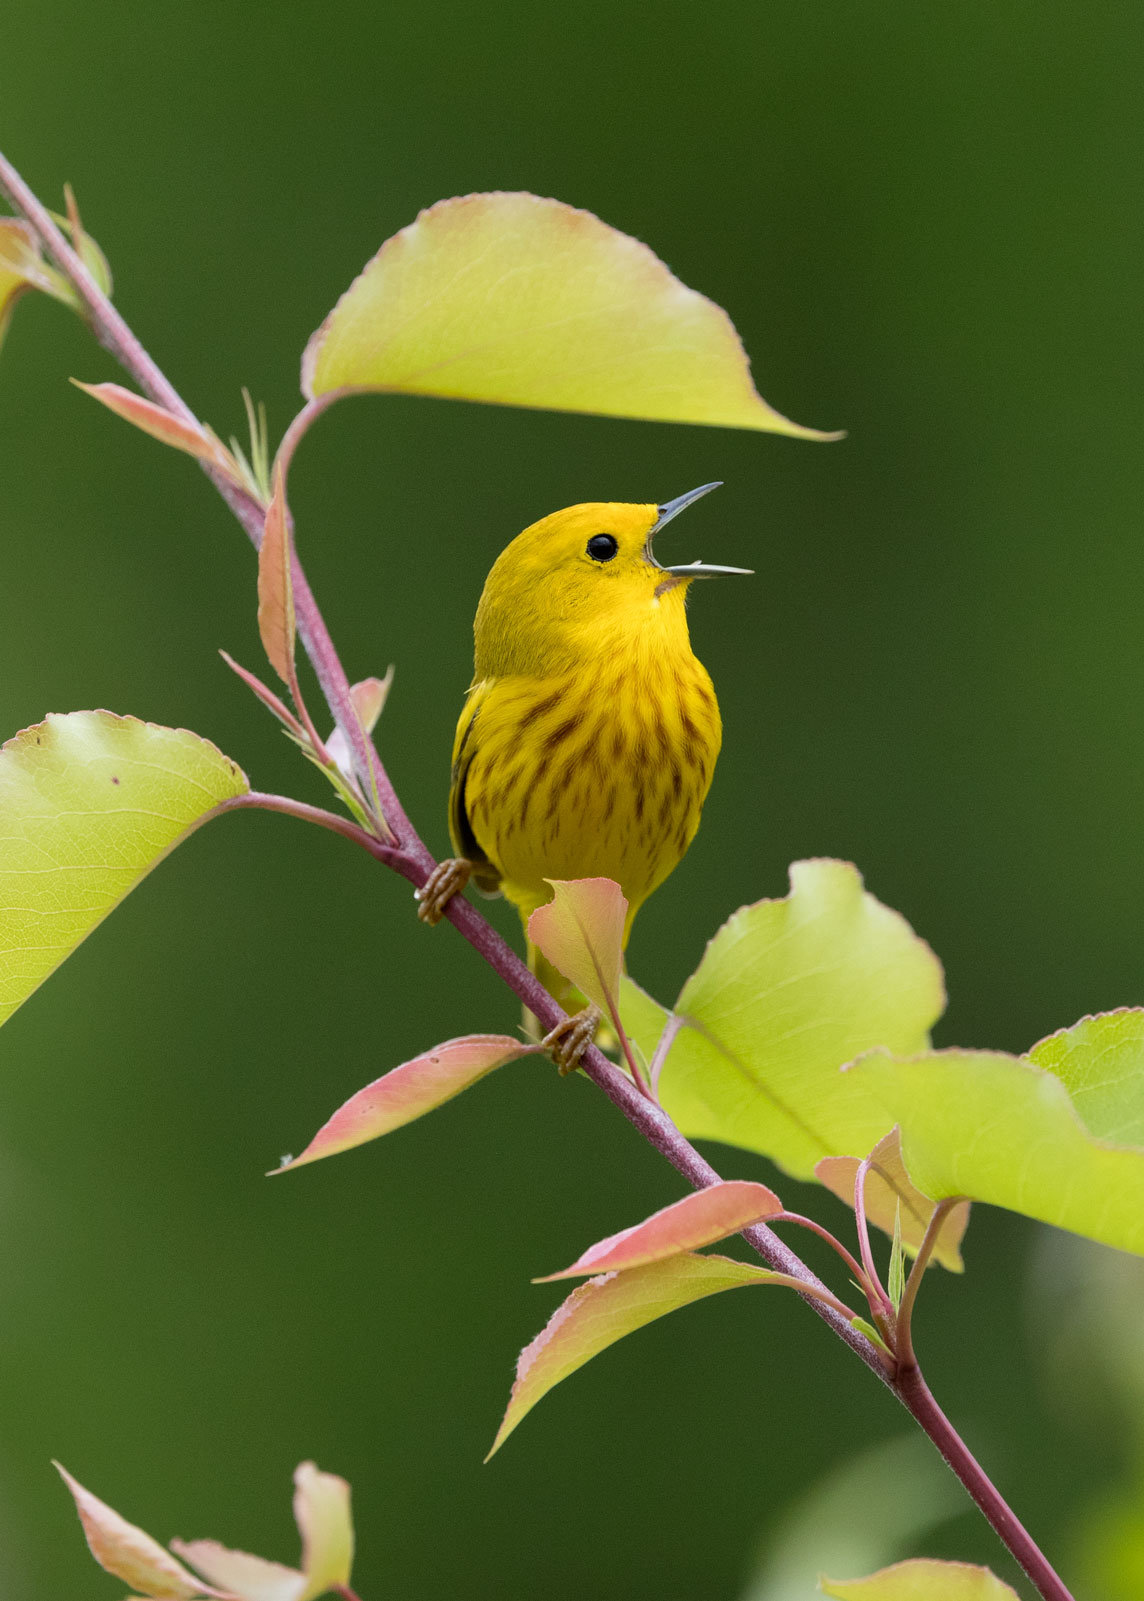 Yellow warbler singing on branch